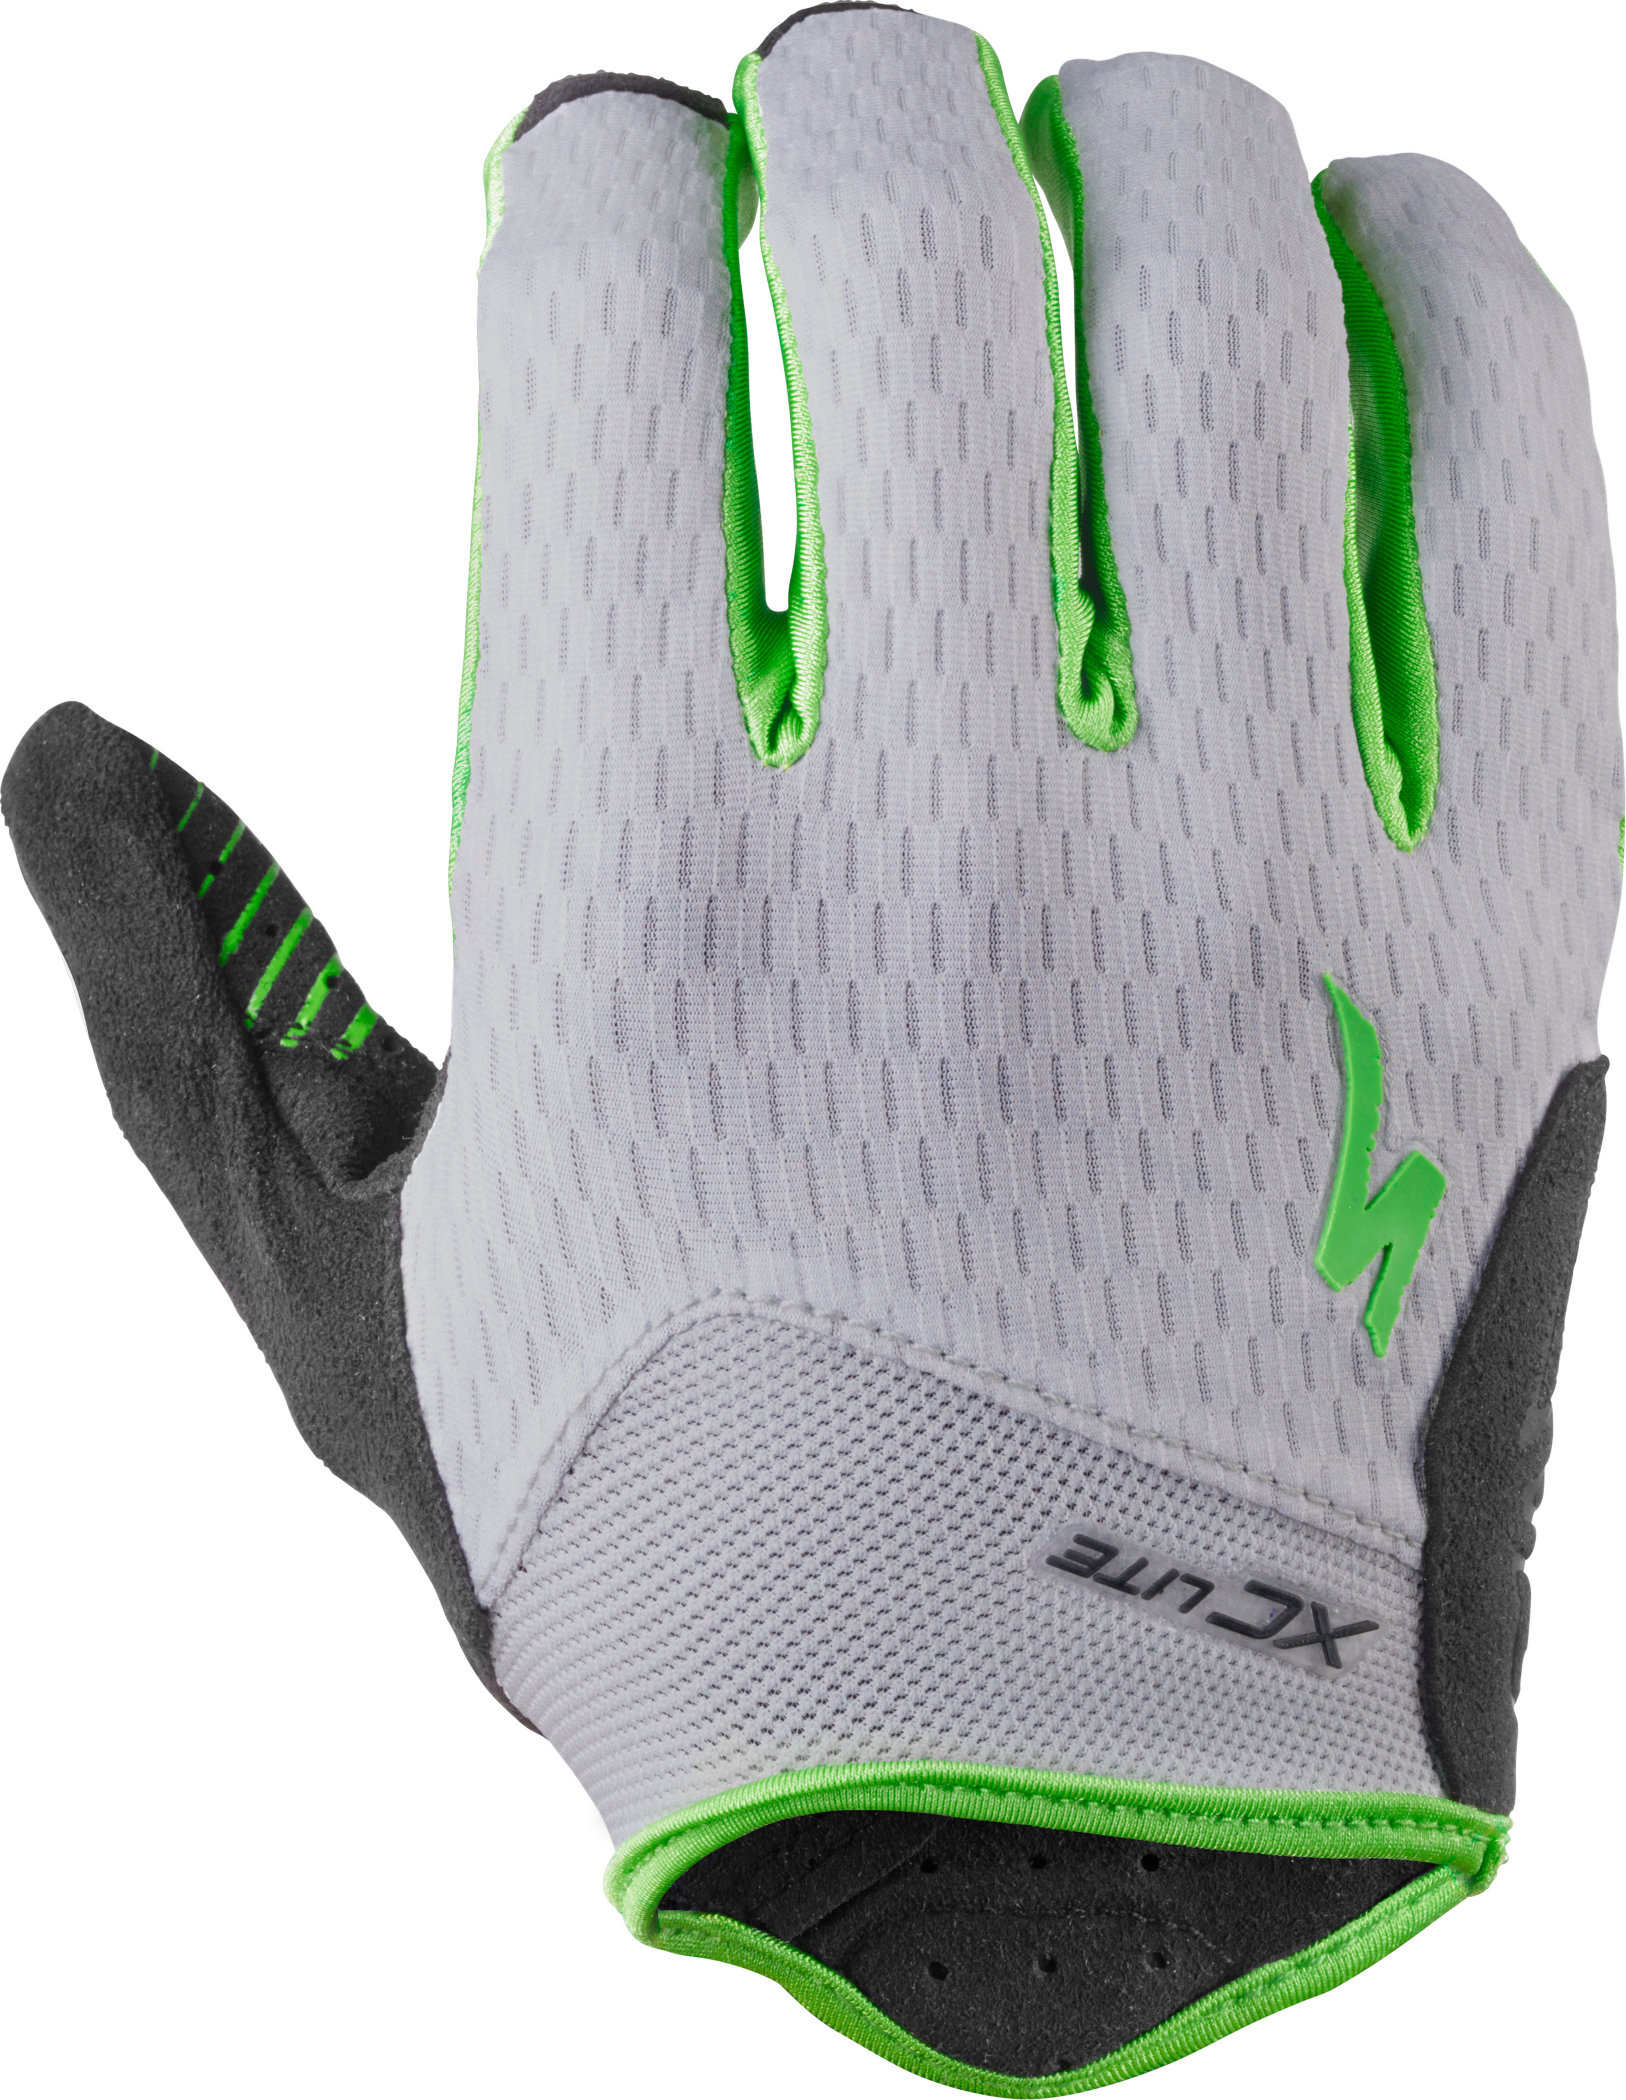 SPECIALIZED XC LITE GLOVE MOTO GRN/GRY L - Pulsschlag Bike+Sport